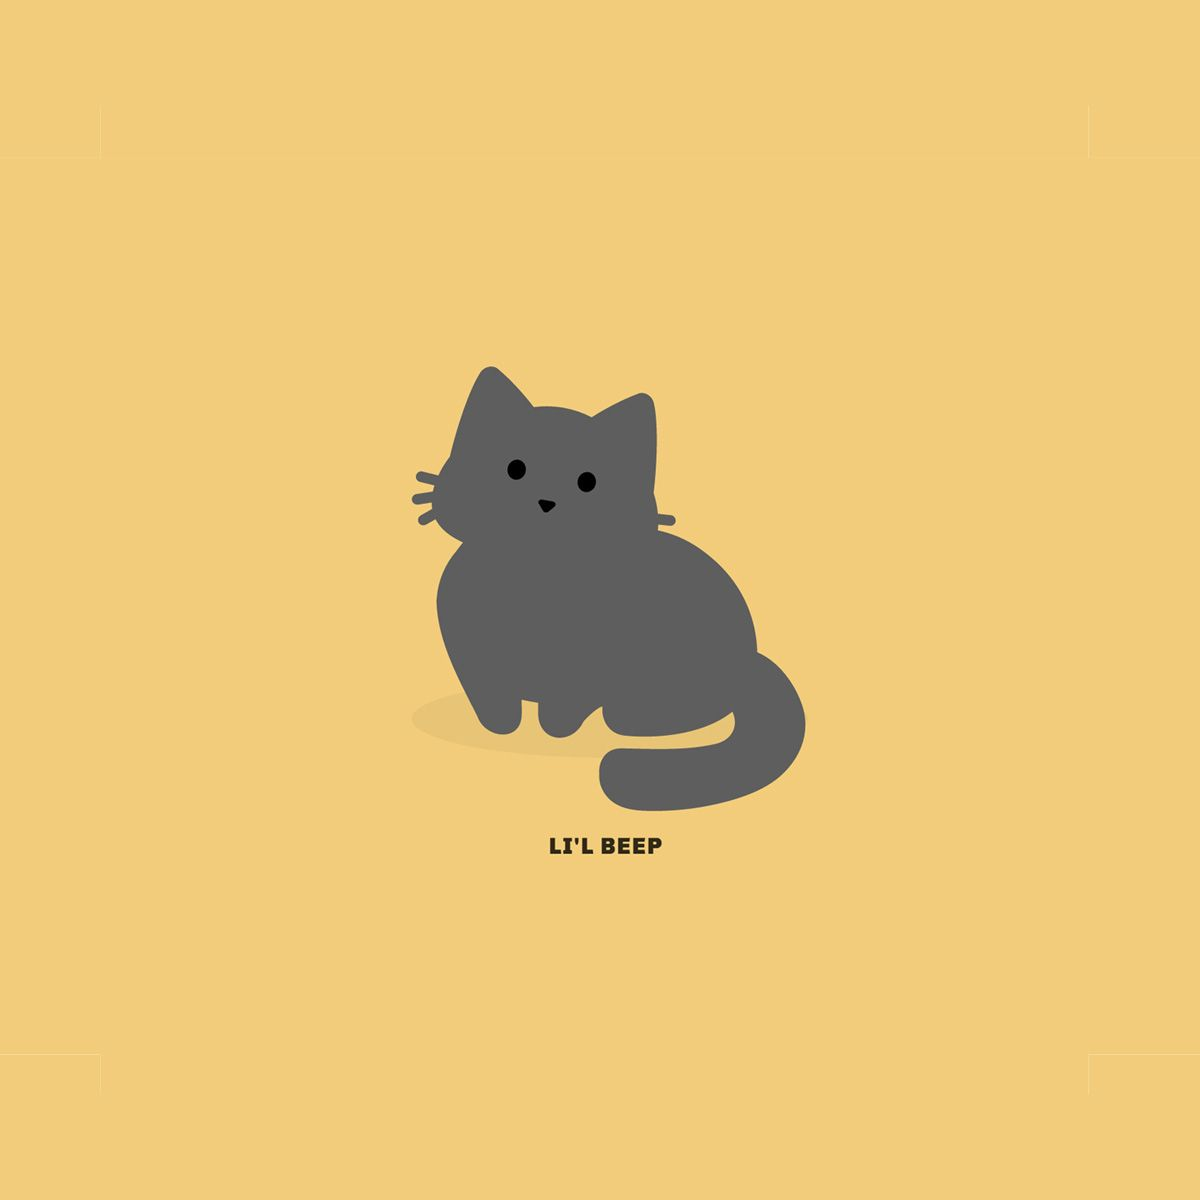 Found with the Tabby Cat chrome extension. Cats, Chrome